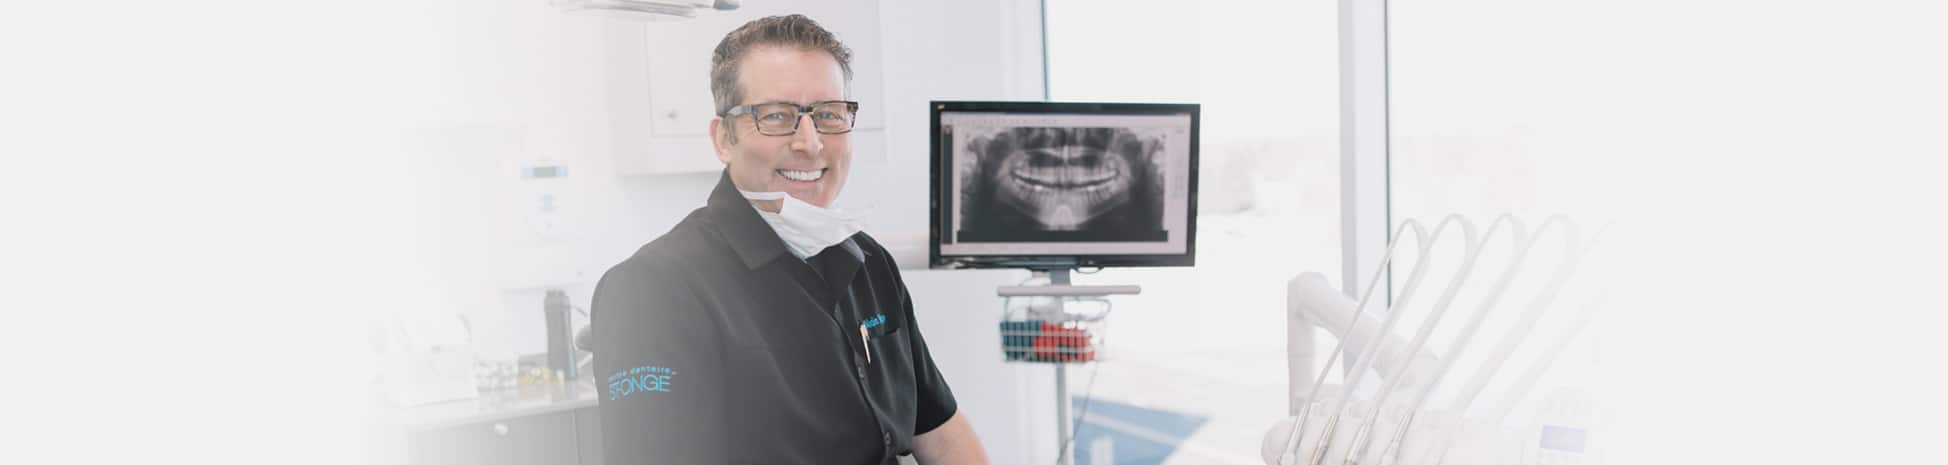 Implant dentaire St-Onge